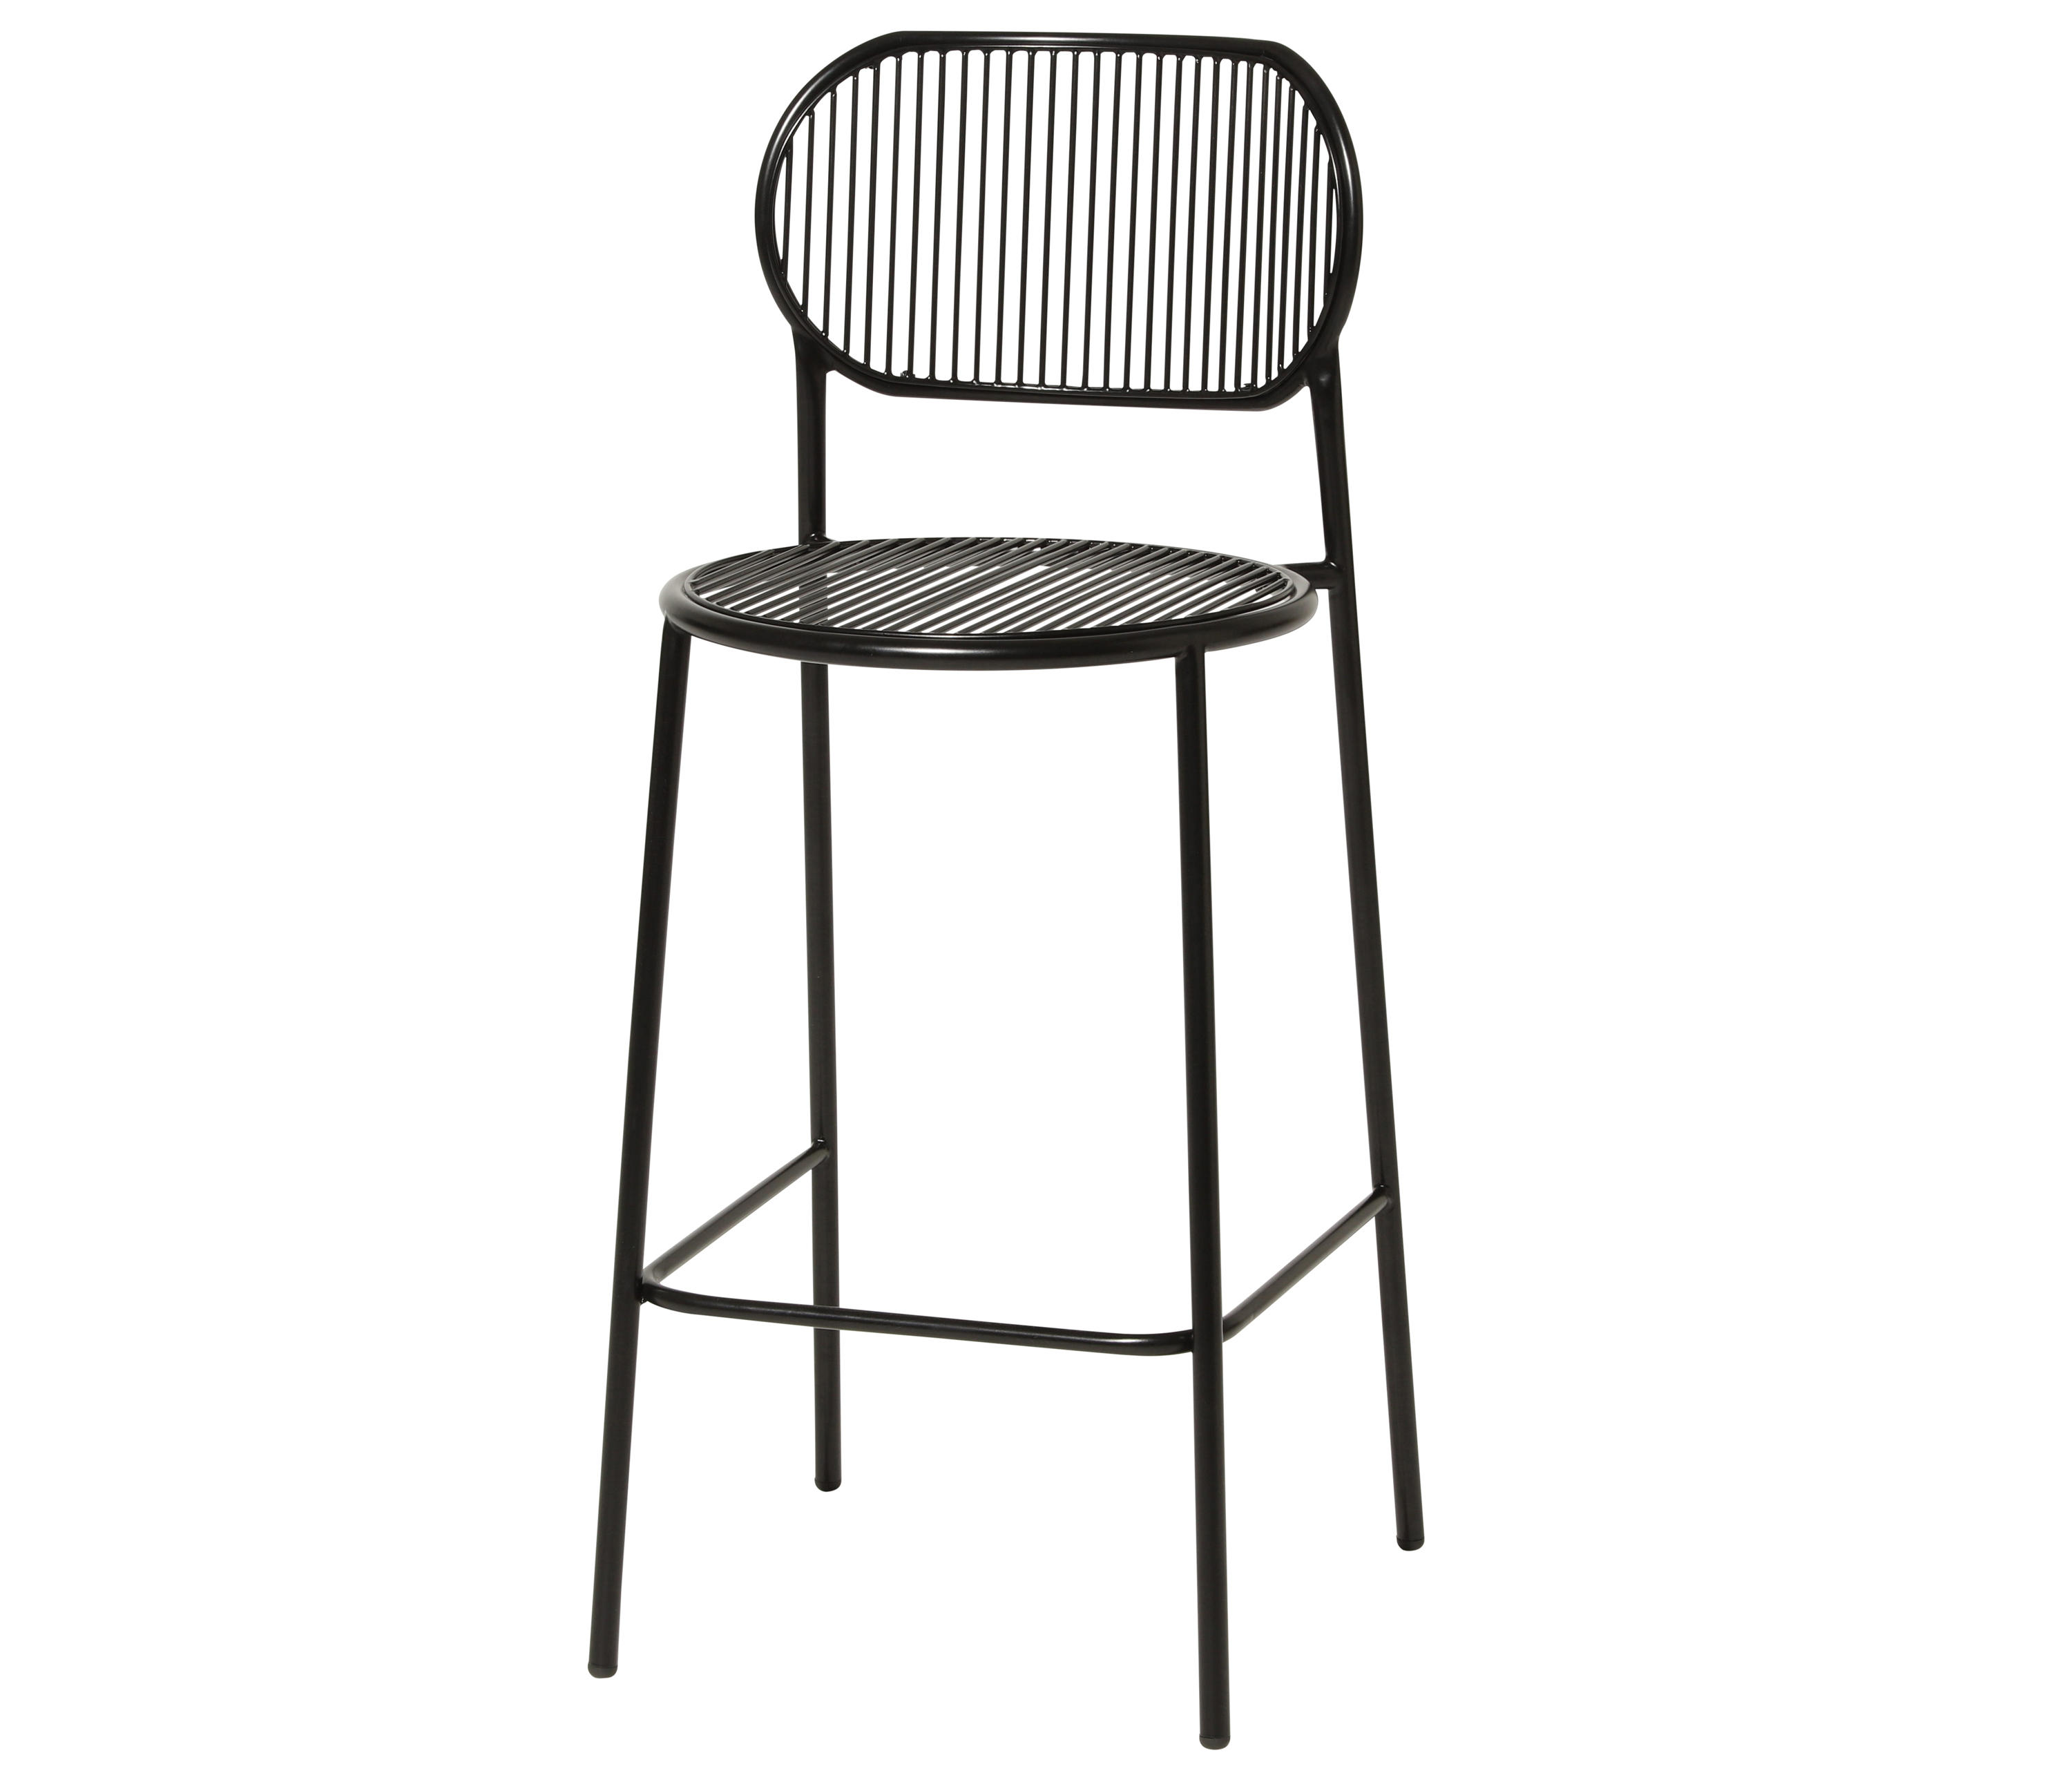 Magnificent Piper Bar Stool Designer Furniture Architonic Gmtry Best Dining Table And Chair Ideas Images Gmtryco